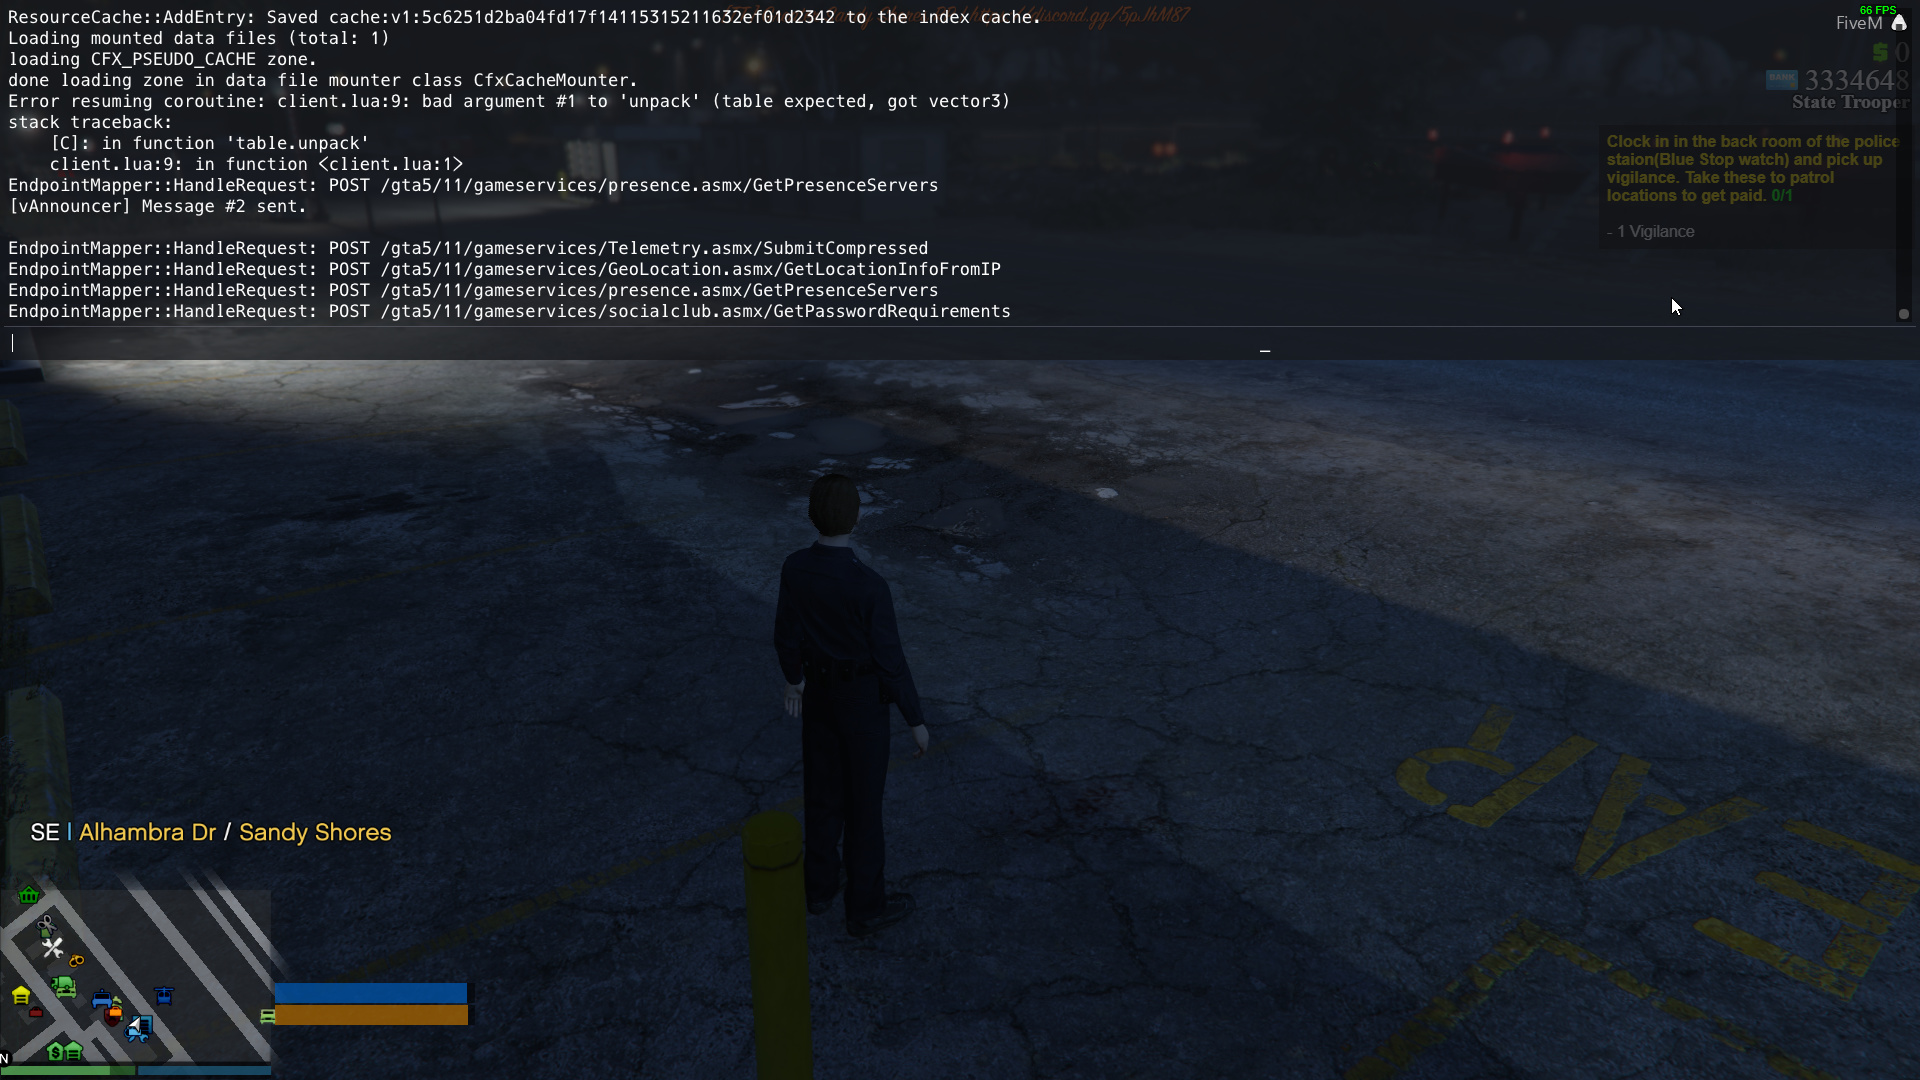 Release] Safe Zone(s) Updated 9/10/18 - Releases - FiveM